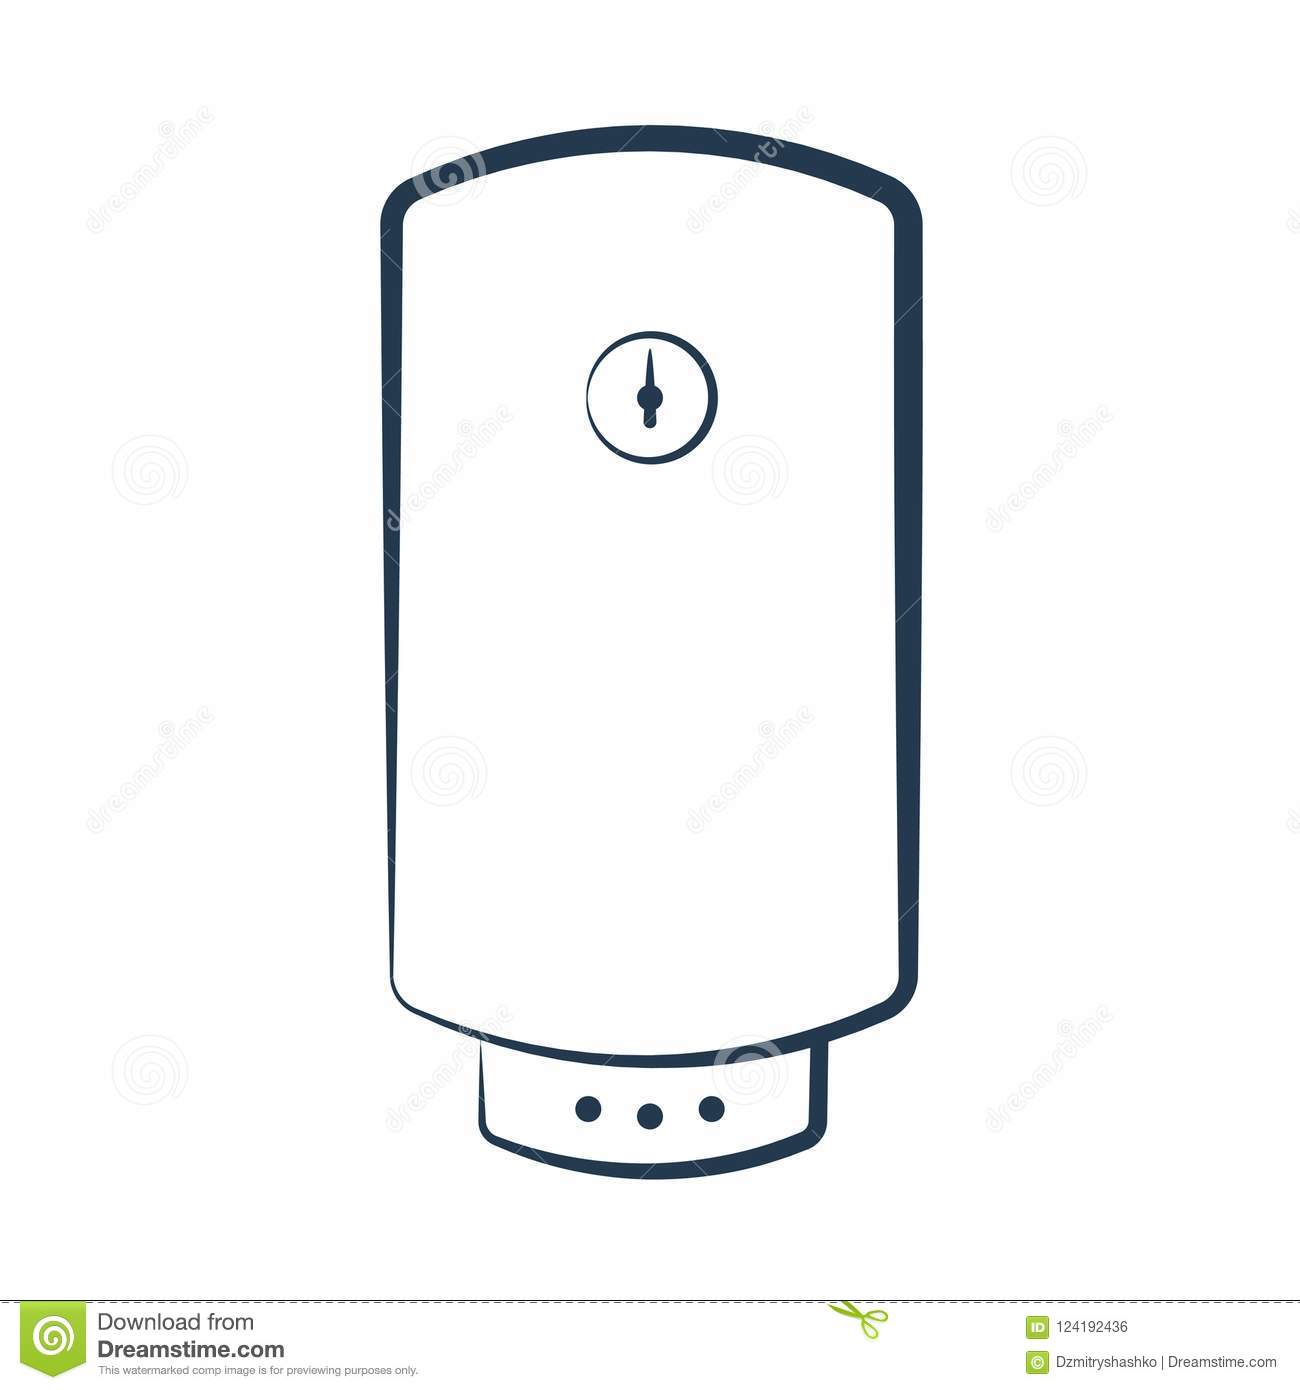 Electric Hot Water Heater Icon Stock Vector.